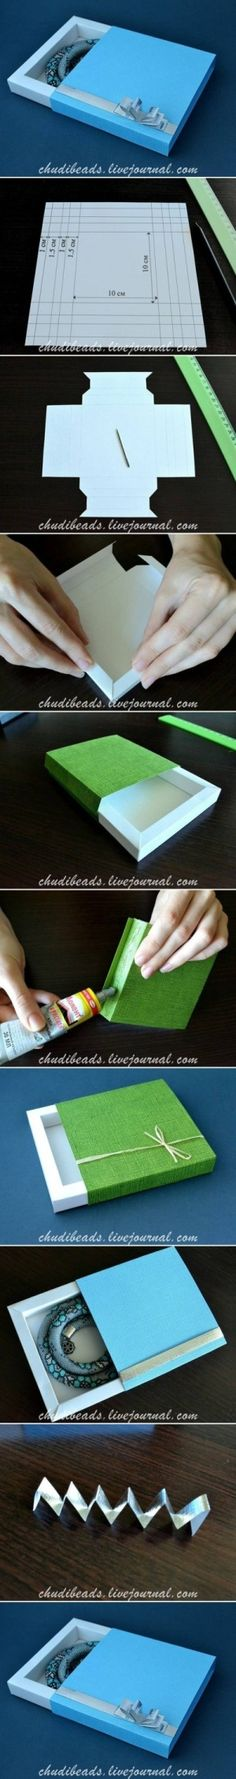 How to make Square Gift Box step by step DIY tutorial instructions , How to, how to make, step by step, picture tutorials, diy instructions, by Mary Smith fSesz